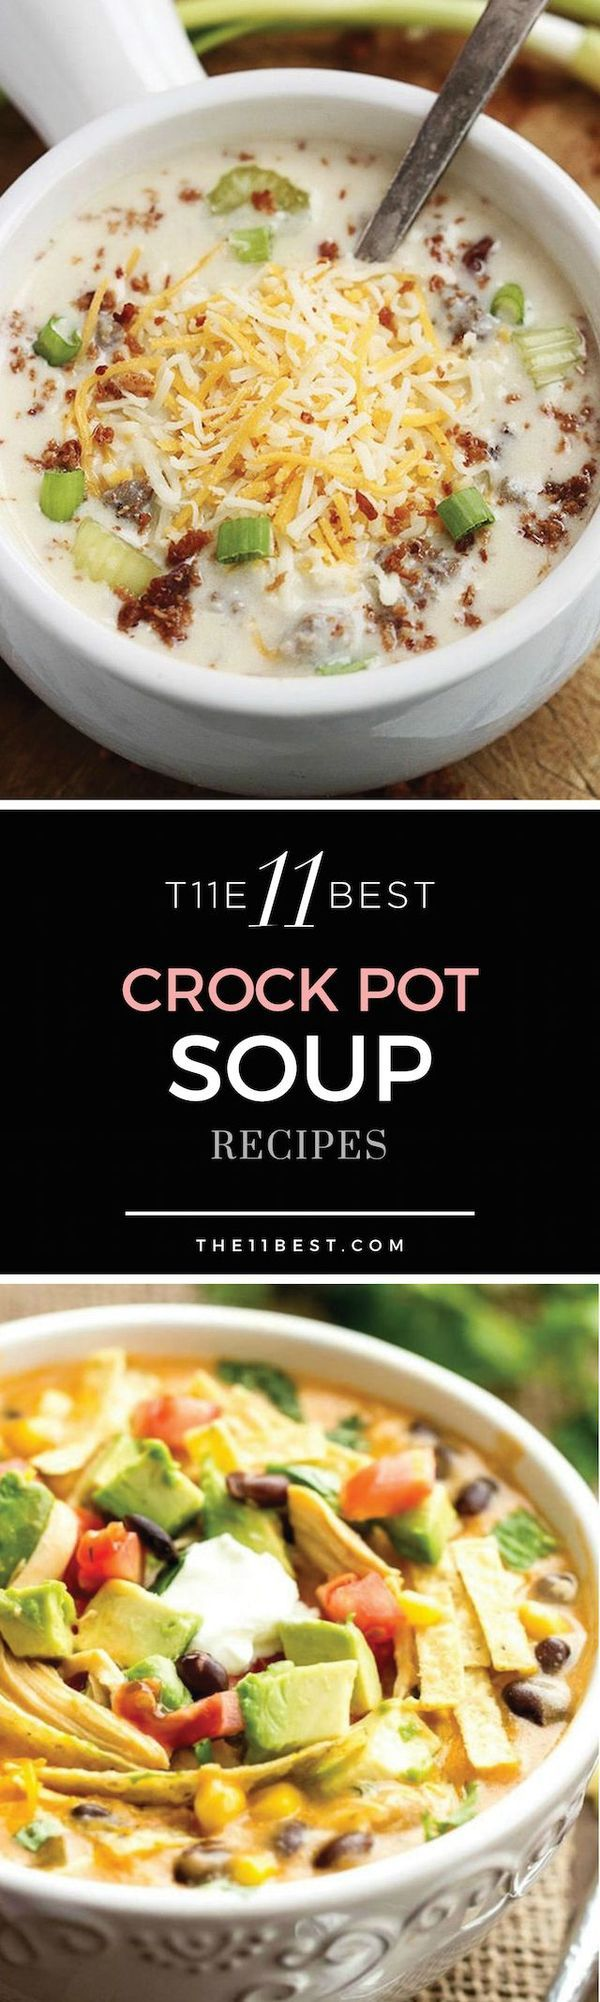 The 11 Best Crock Pot Soup Recipes. Healthy meal ideas for everyday dinner!